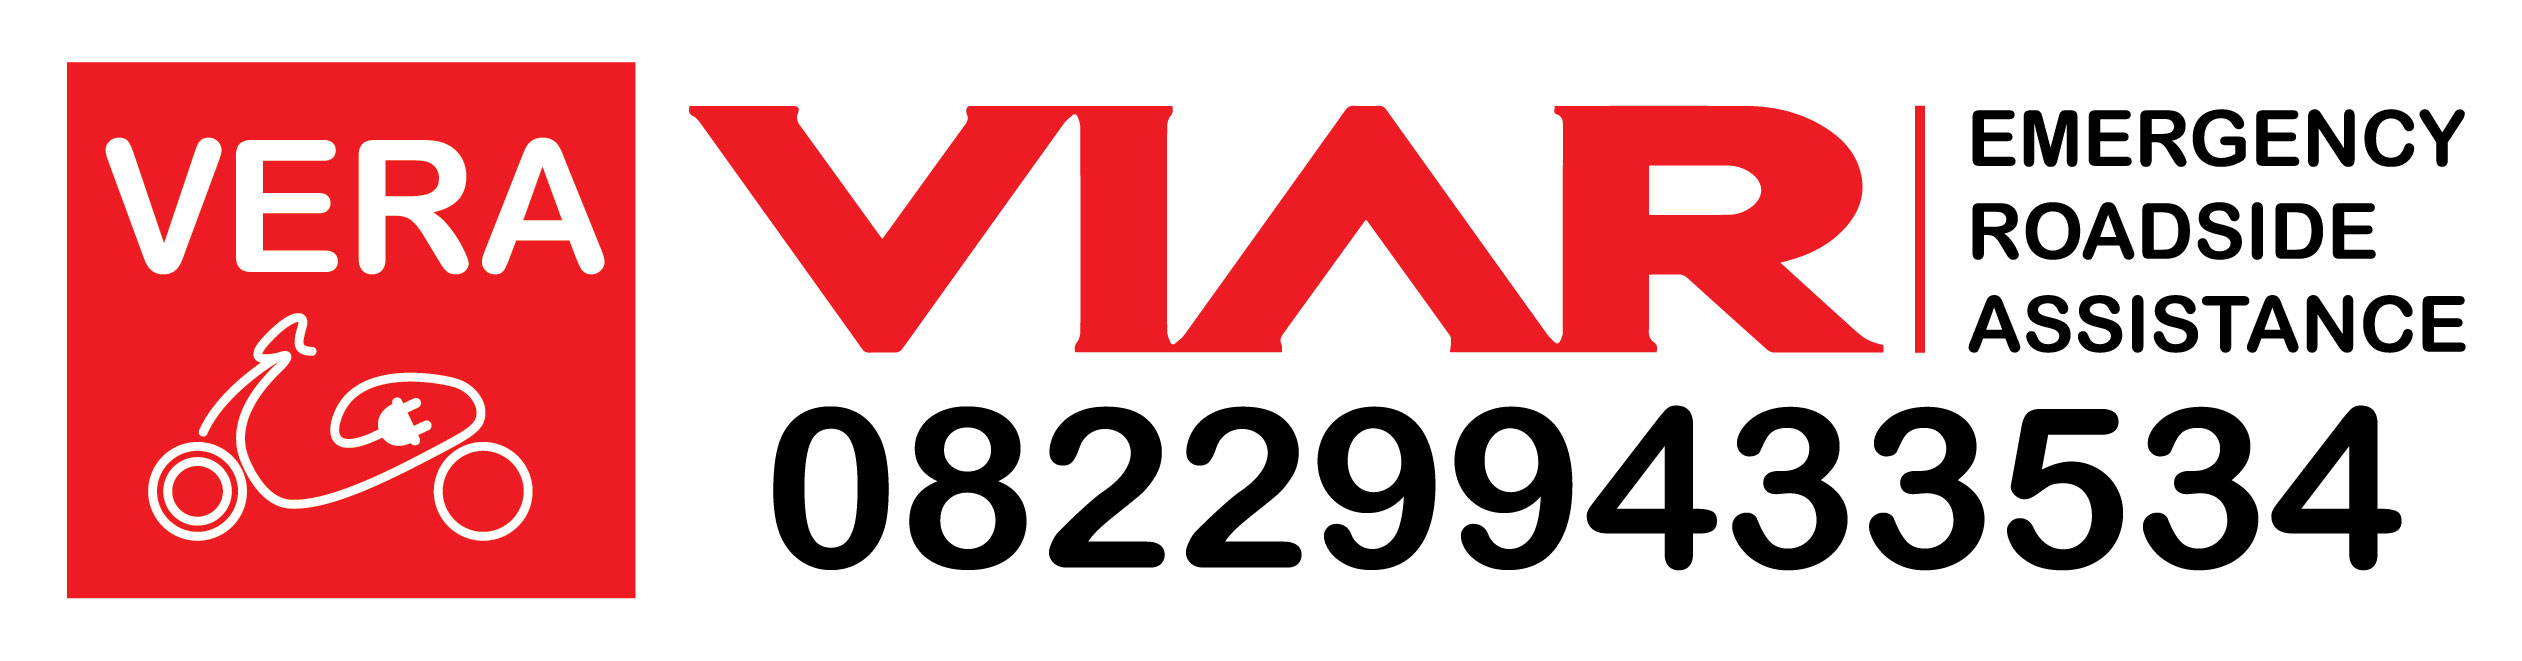 VERA 082299433534 Viar Emergency Roadside Assistance